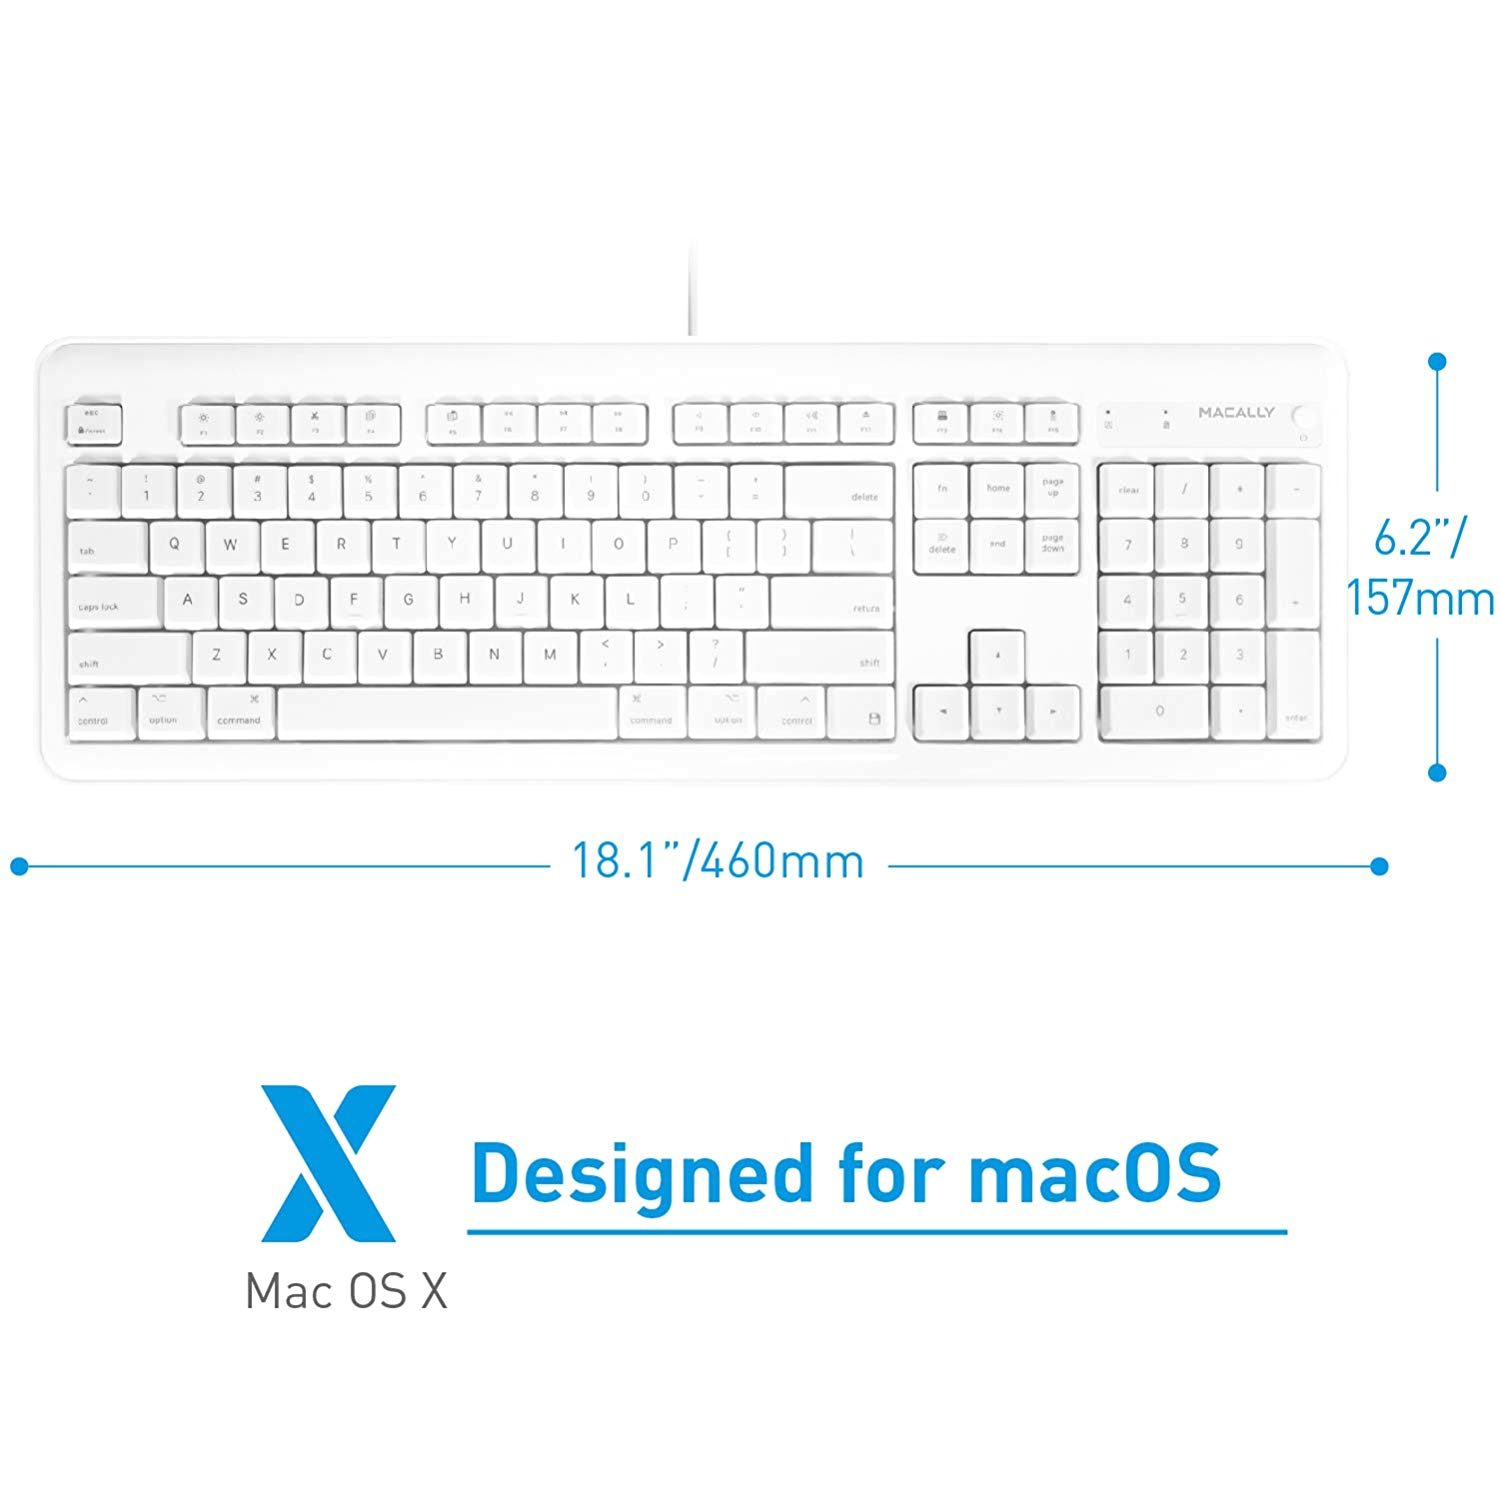 Computer Keyboard Wiring Diagram Macally Full Size Usb Wired Computer Keyboard with Built In 2 Port Usb Hub Perfect for Your Mouse 16 Apple Shortcut Keys for Mac Os Apple Imac